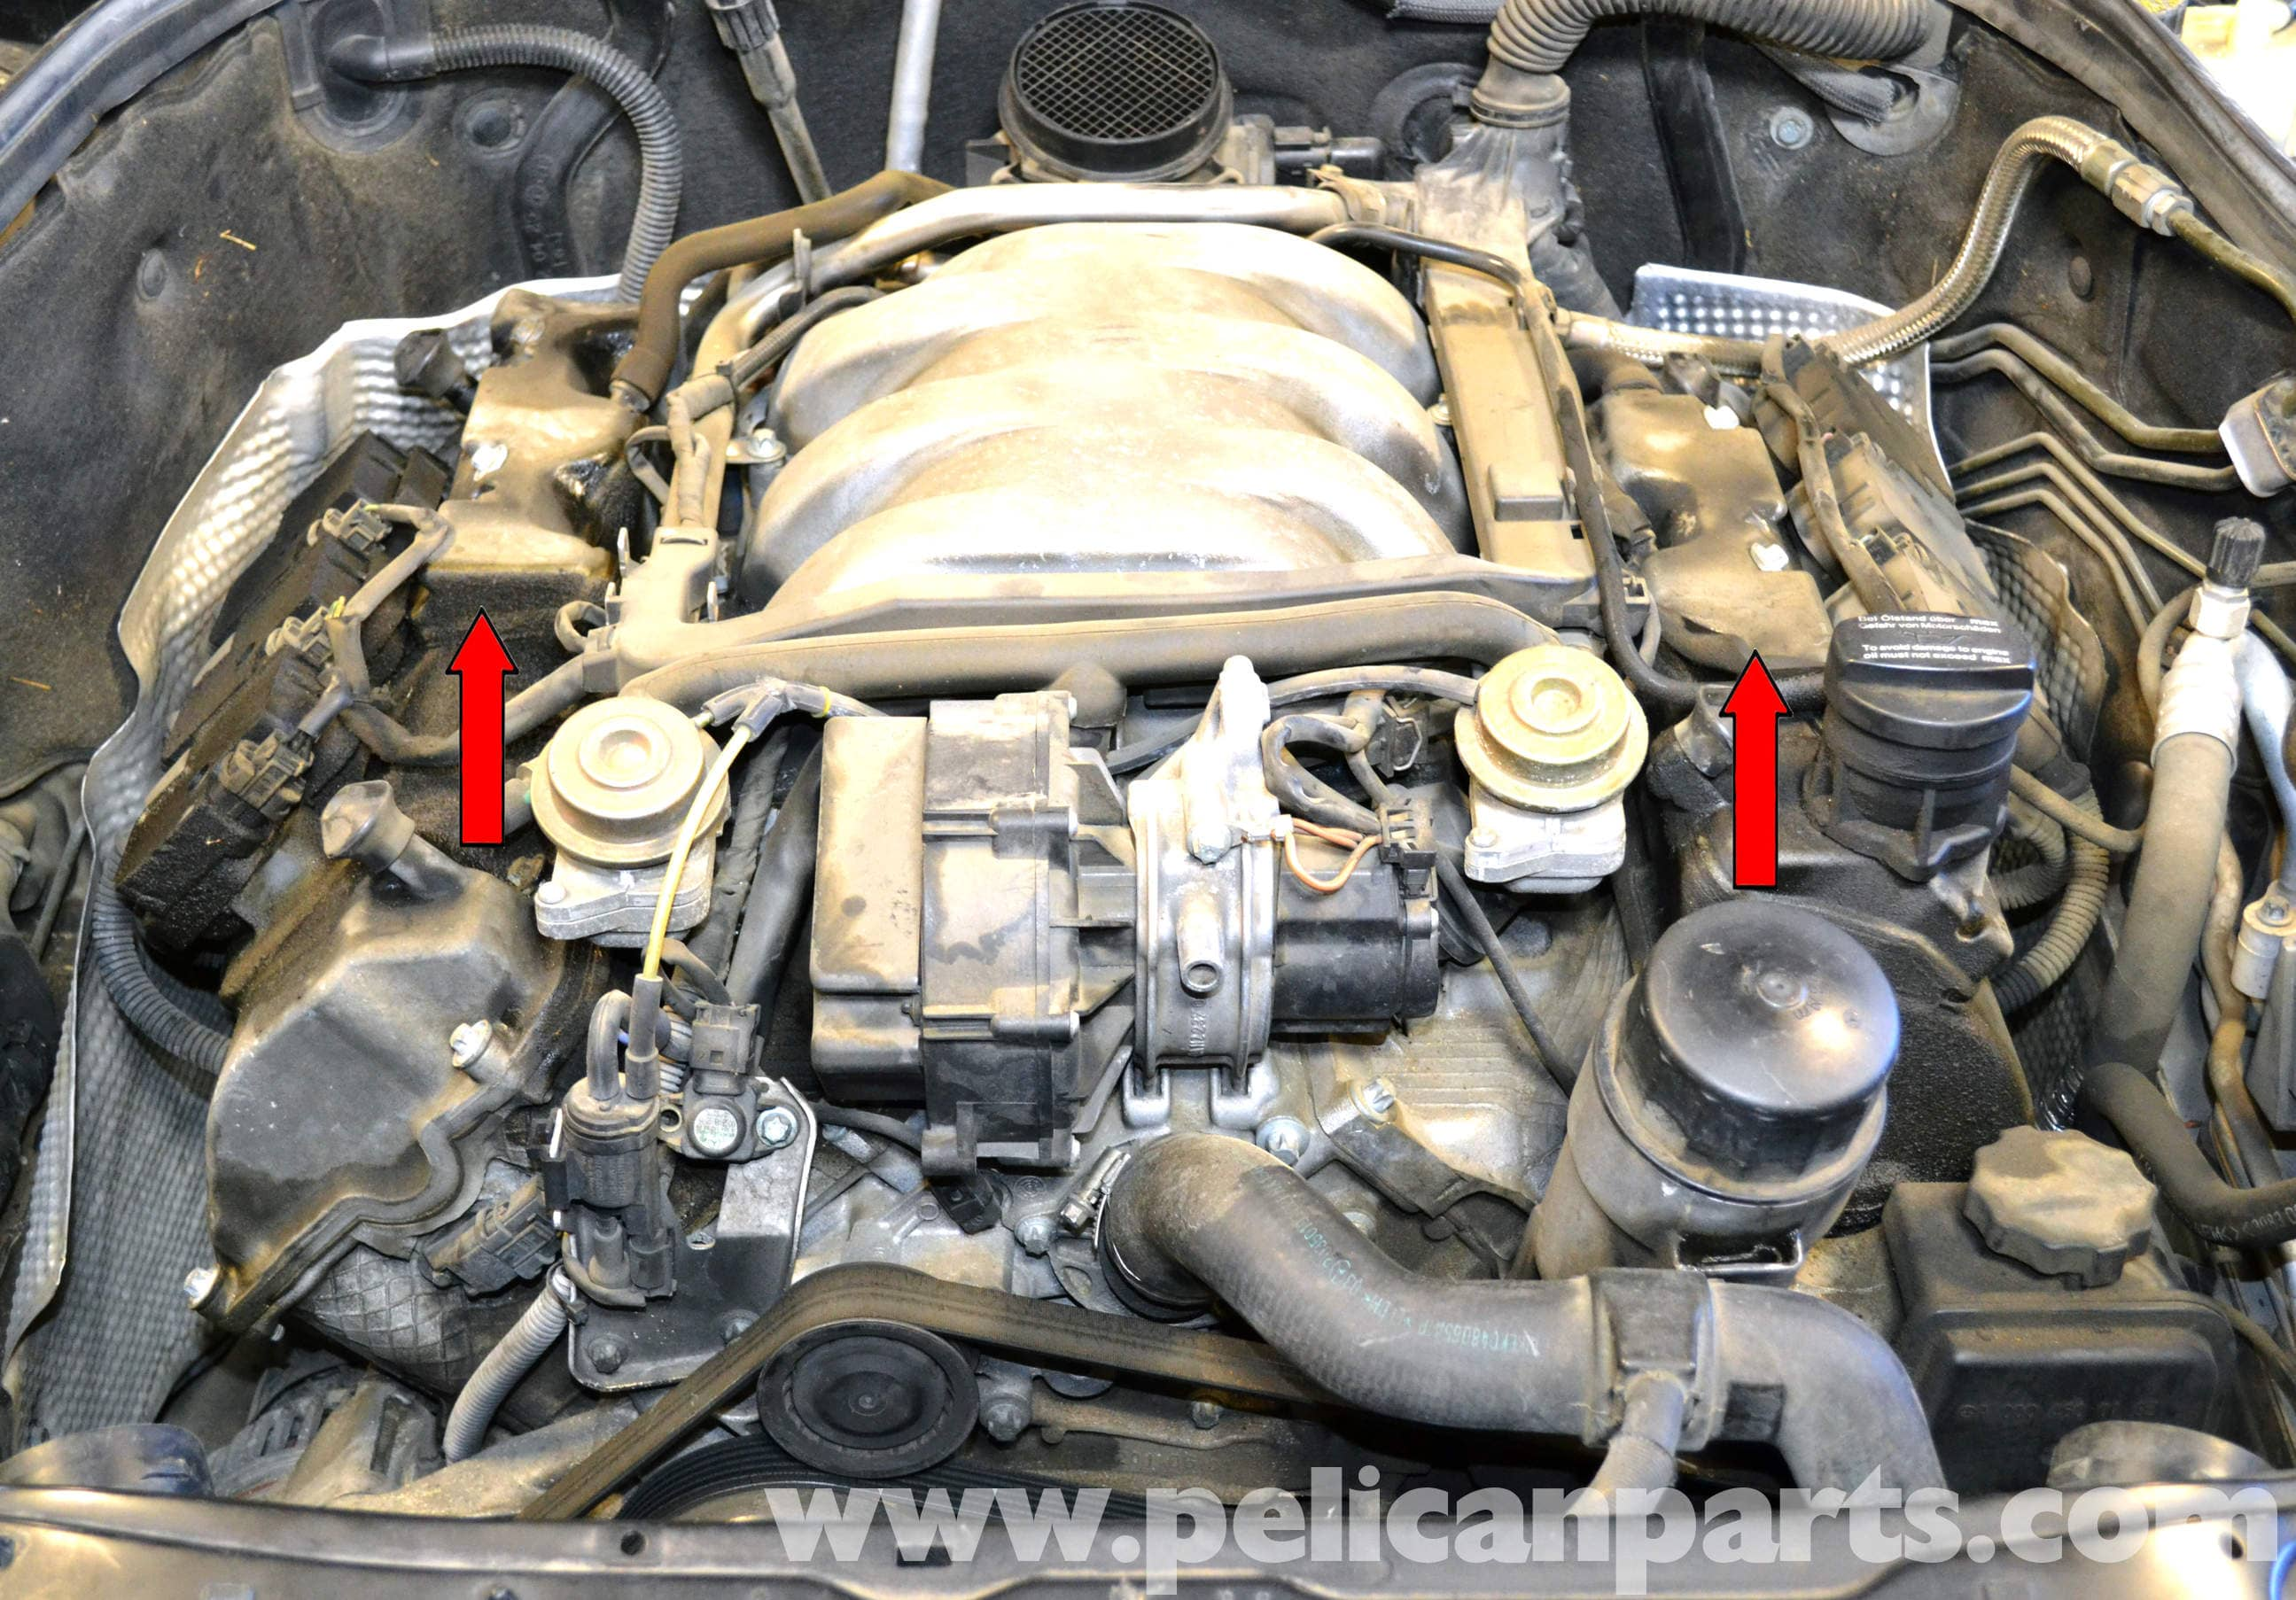 2008 mercedes ml320 engine diagram